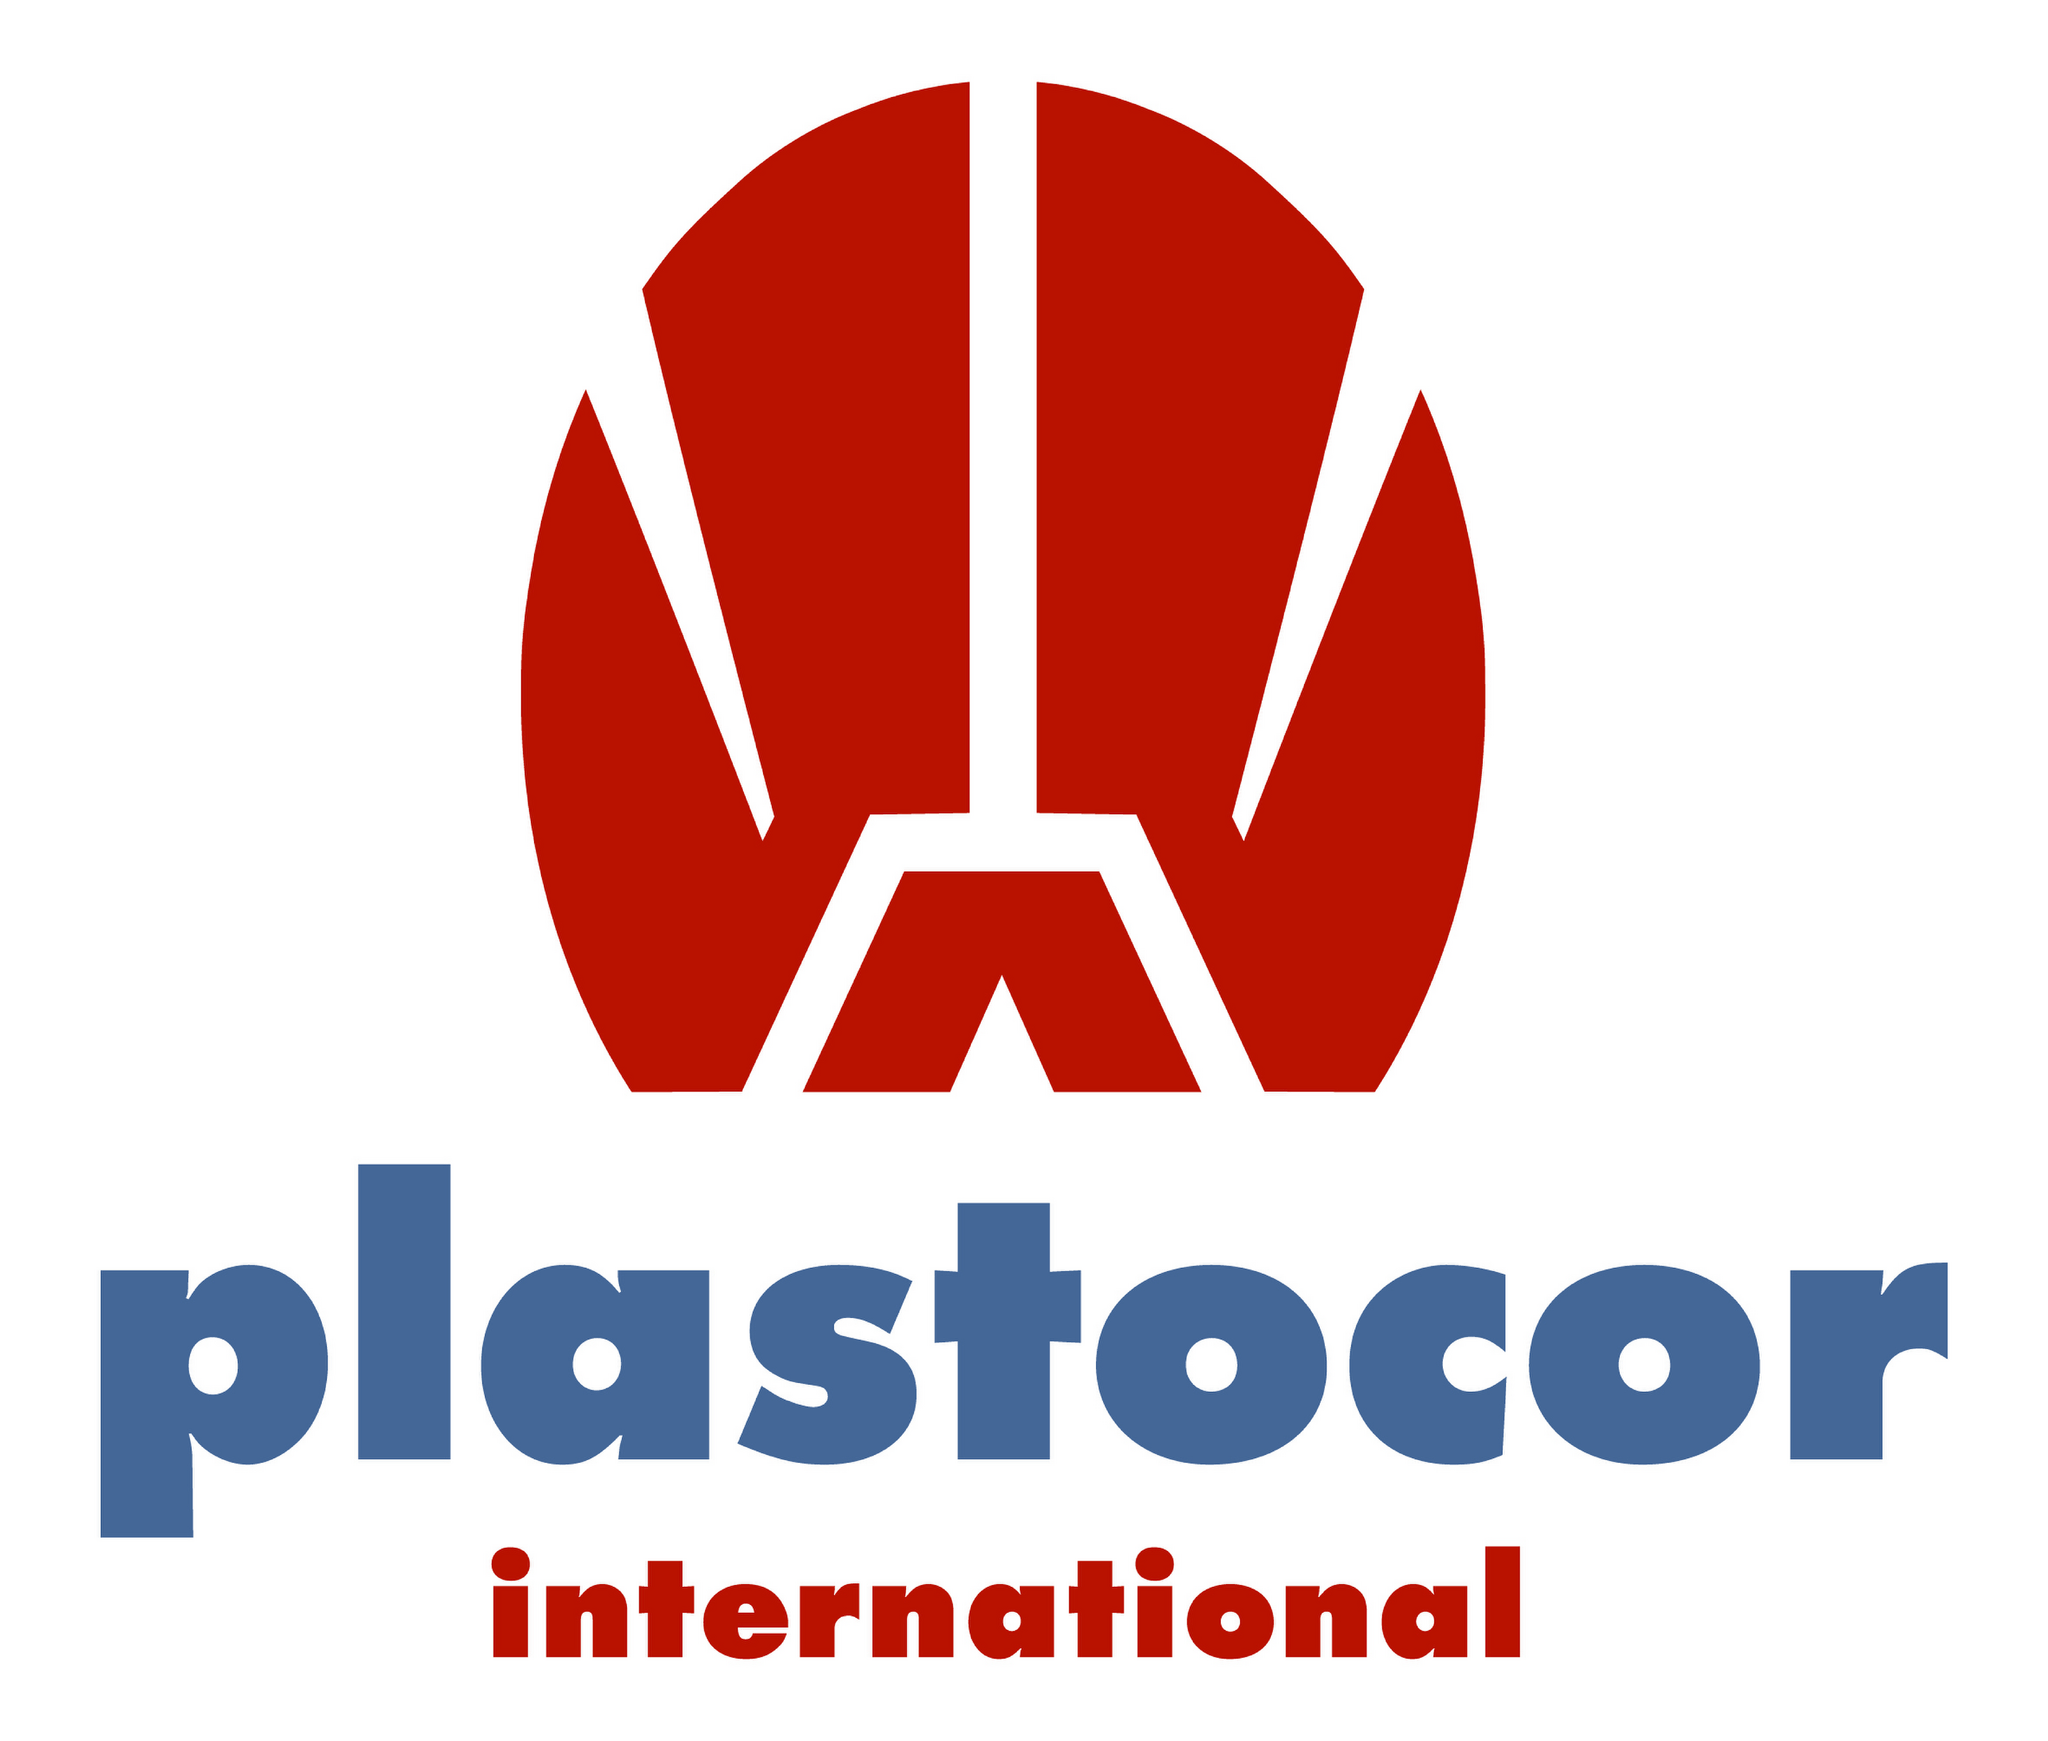 Plastocor International